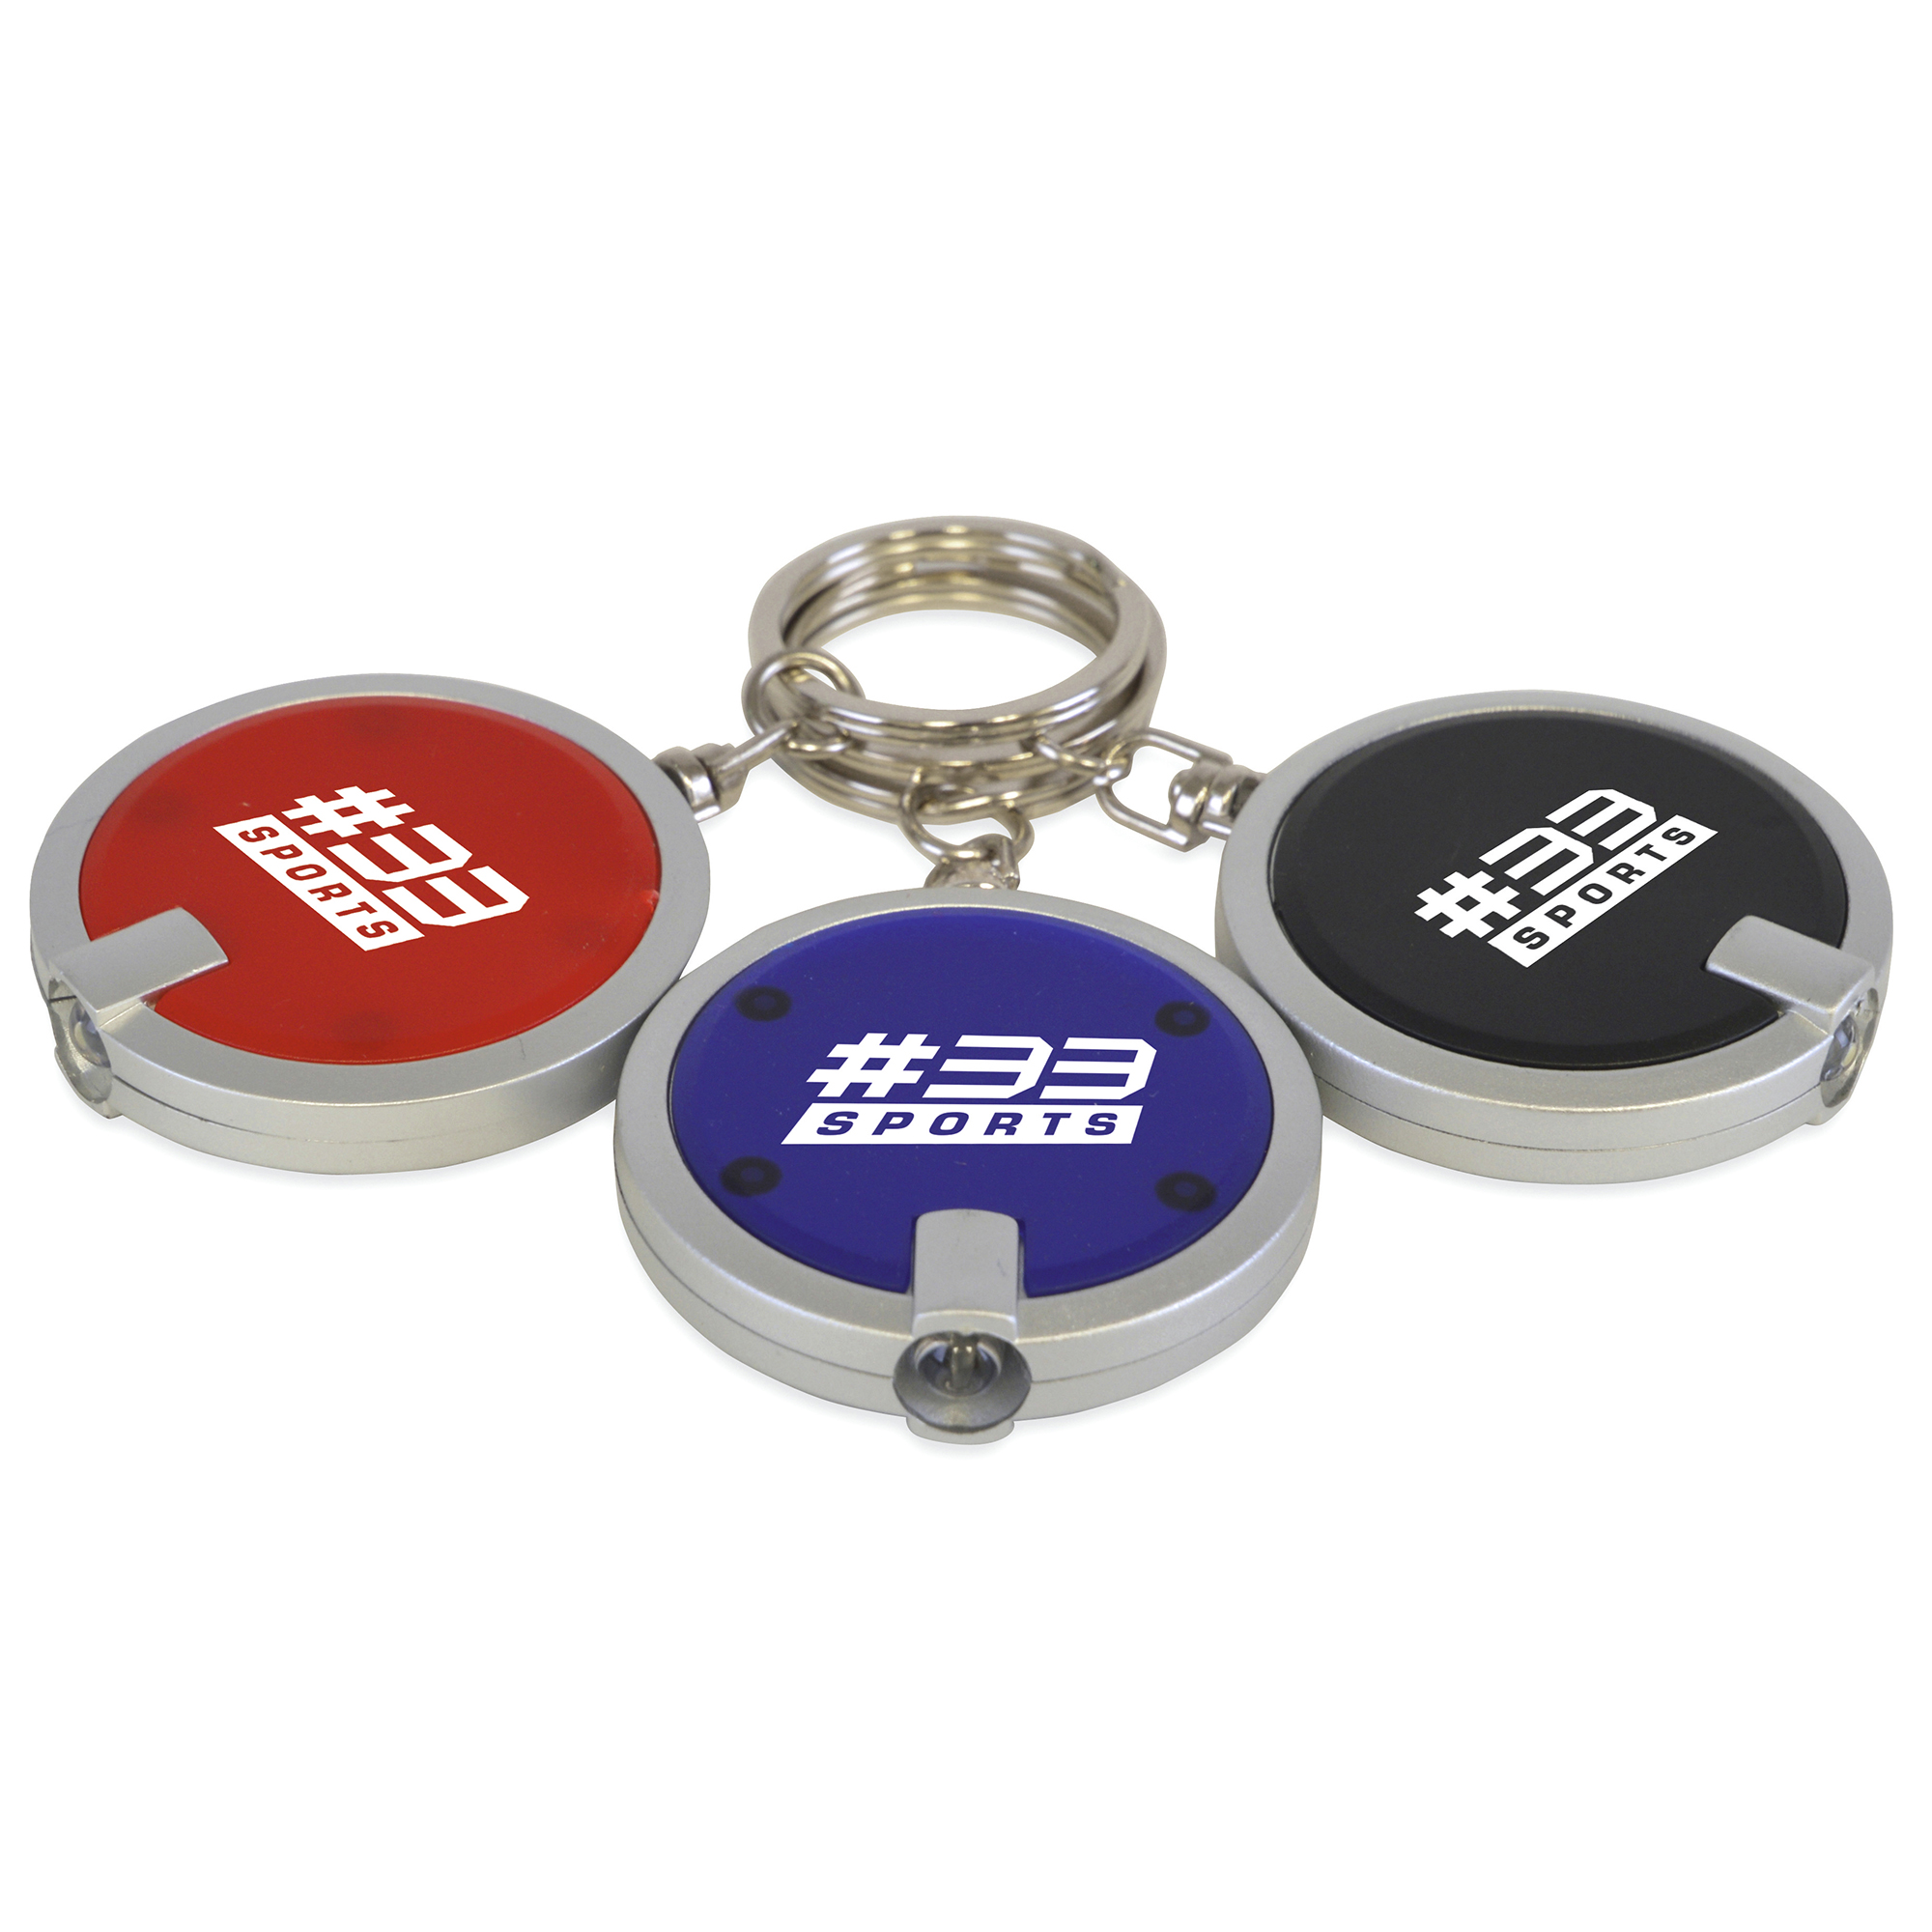 Promotional Sphere Plastic Round Led Keyring Torch